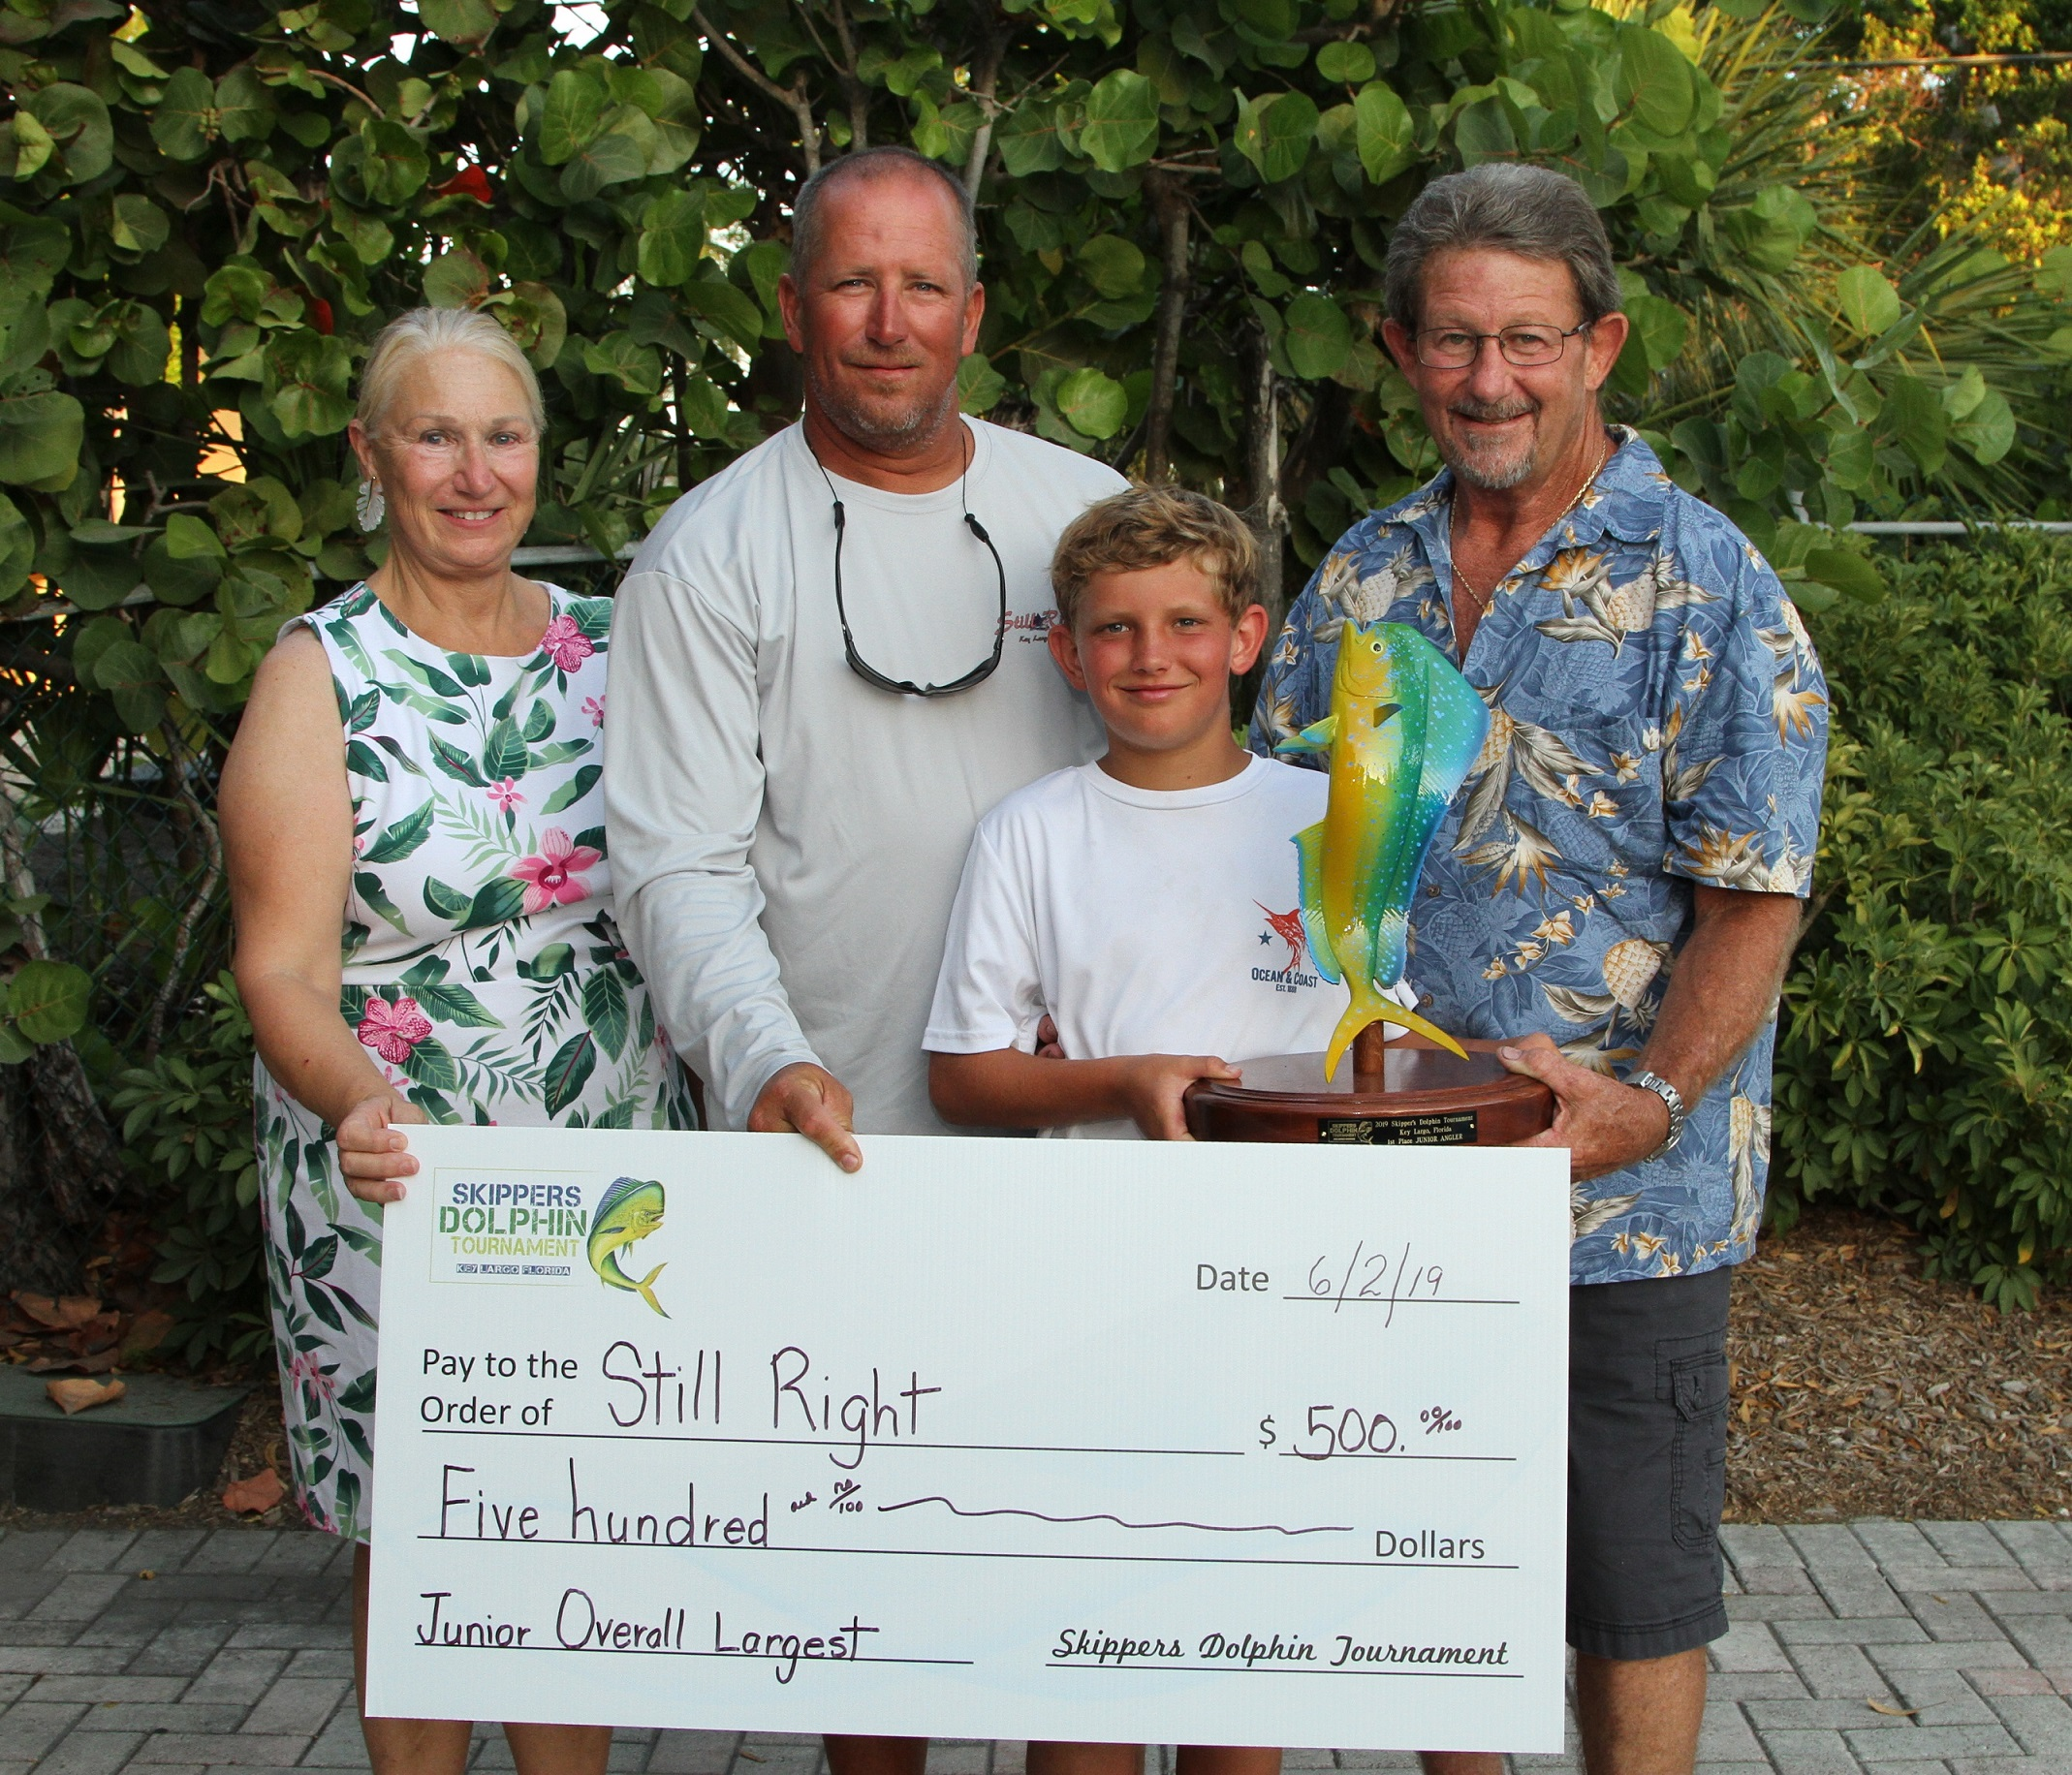 Top Jr. Angler - Still Right